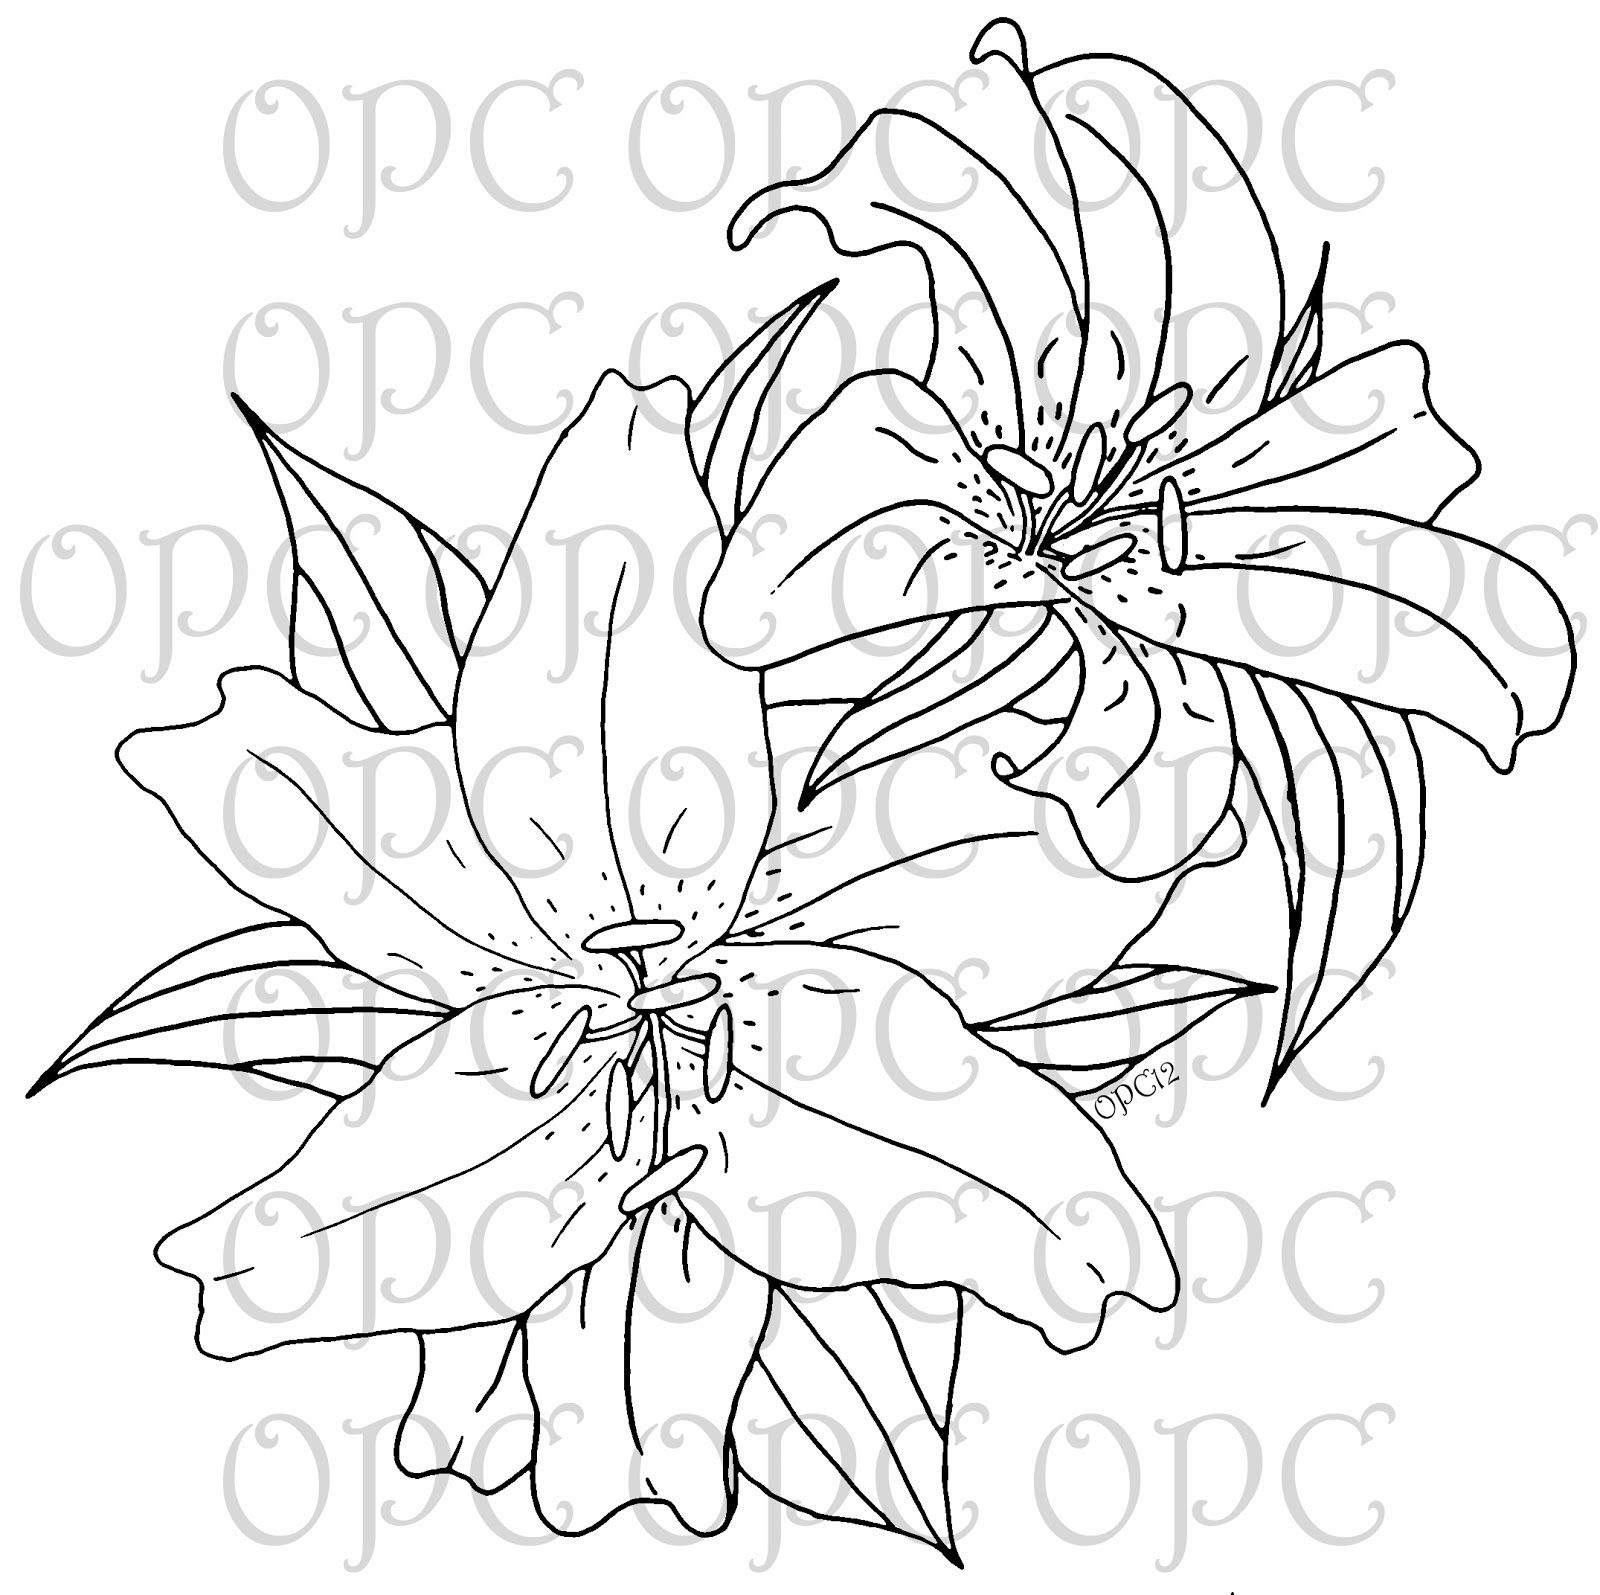 Oriental Lilies Are Known For Their Fragrant Perfume